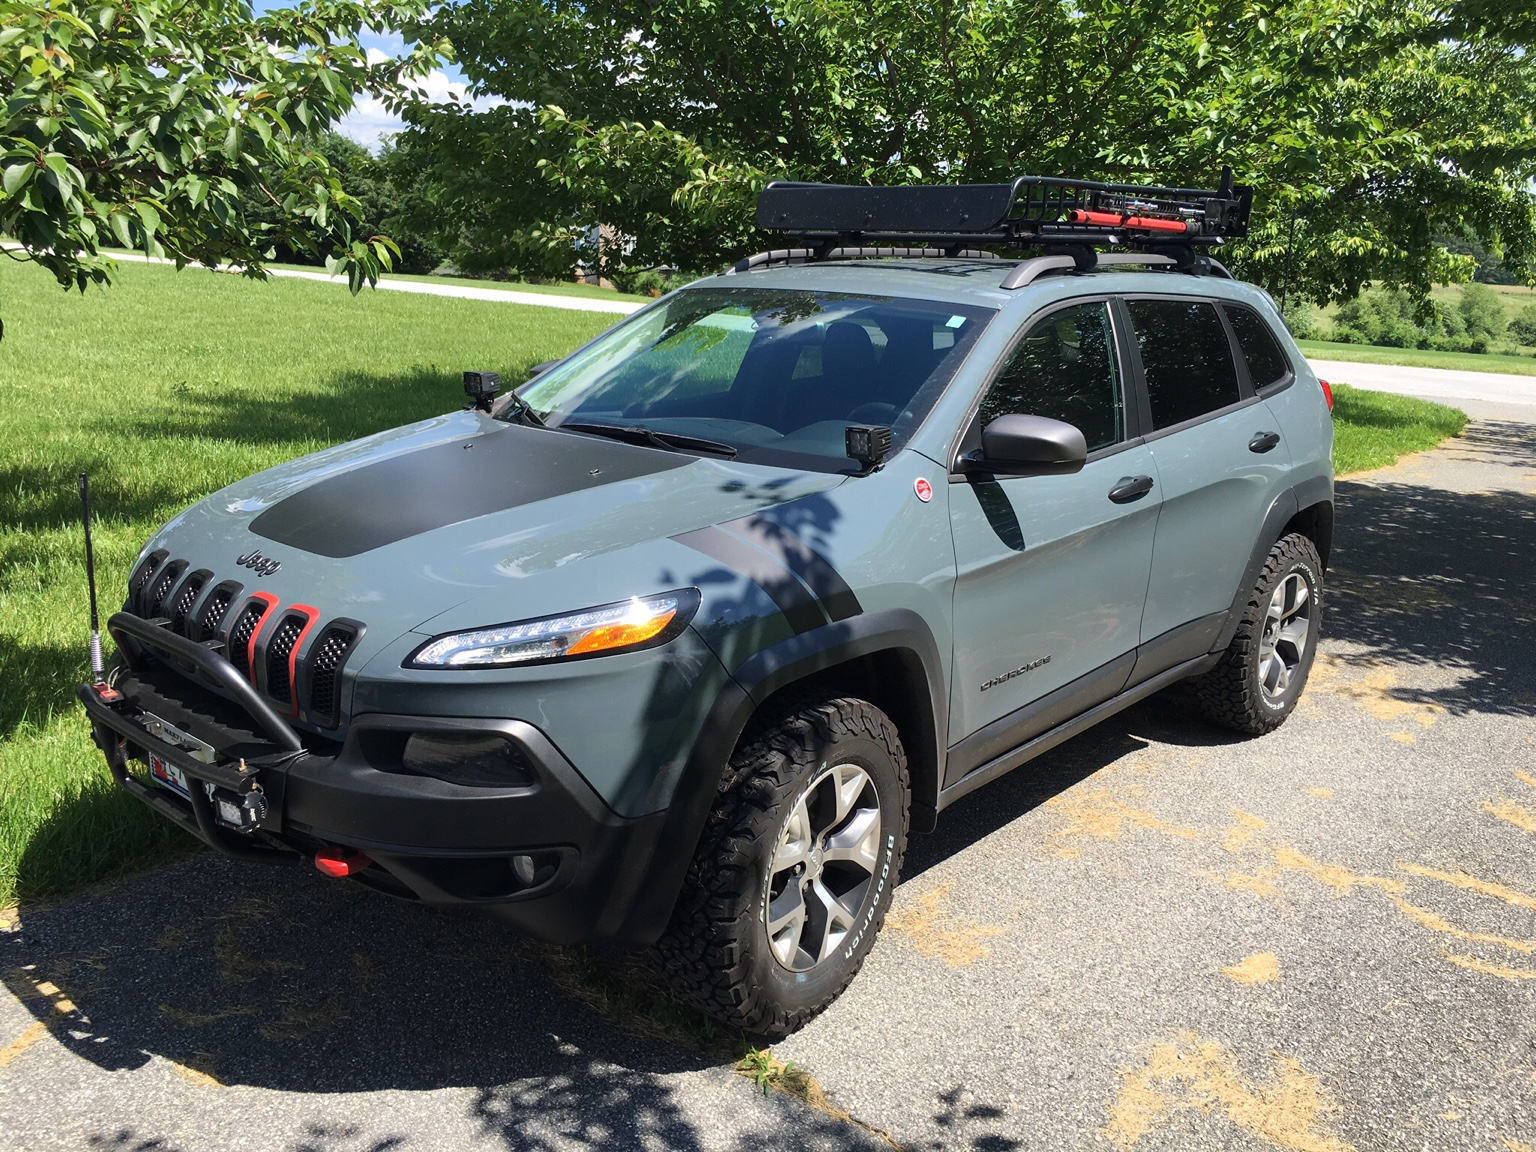 Cheap Jeep Accessories 2016 Jeep Cherokee Trailhawk Lift Kit | 2017 - 2018 Best ...